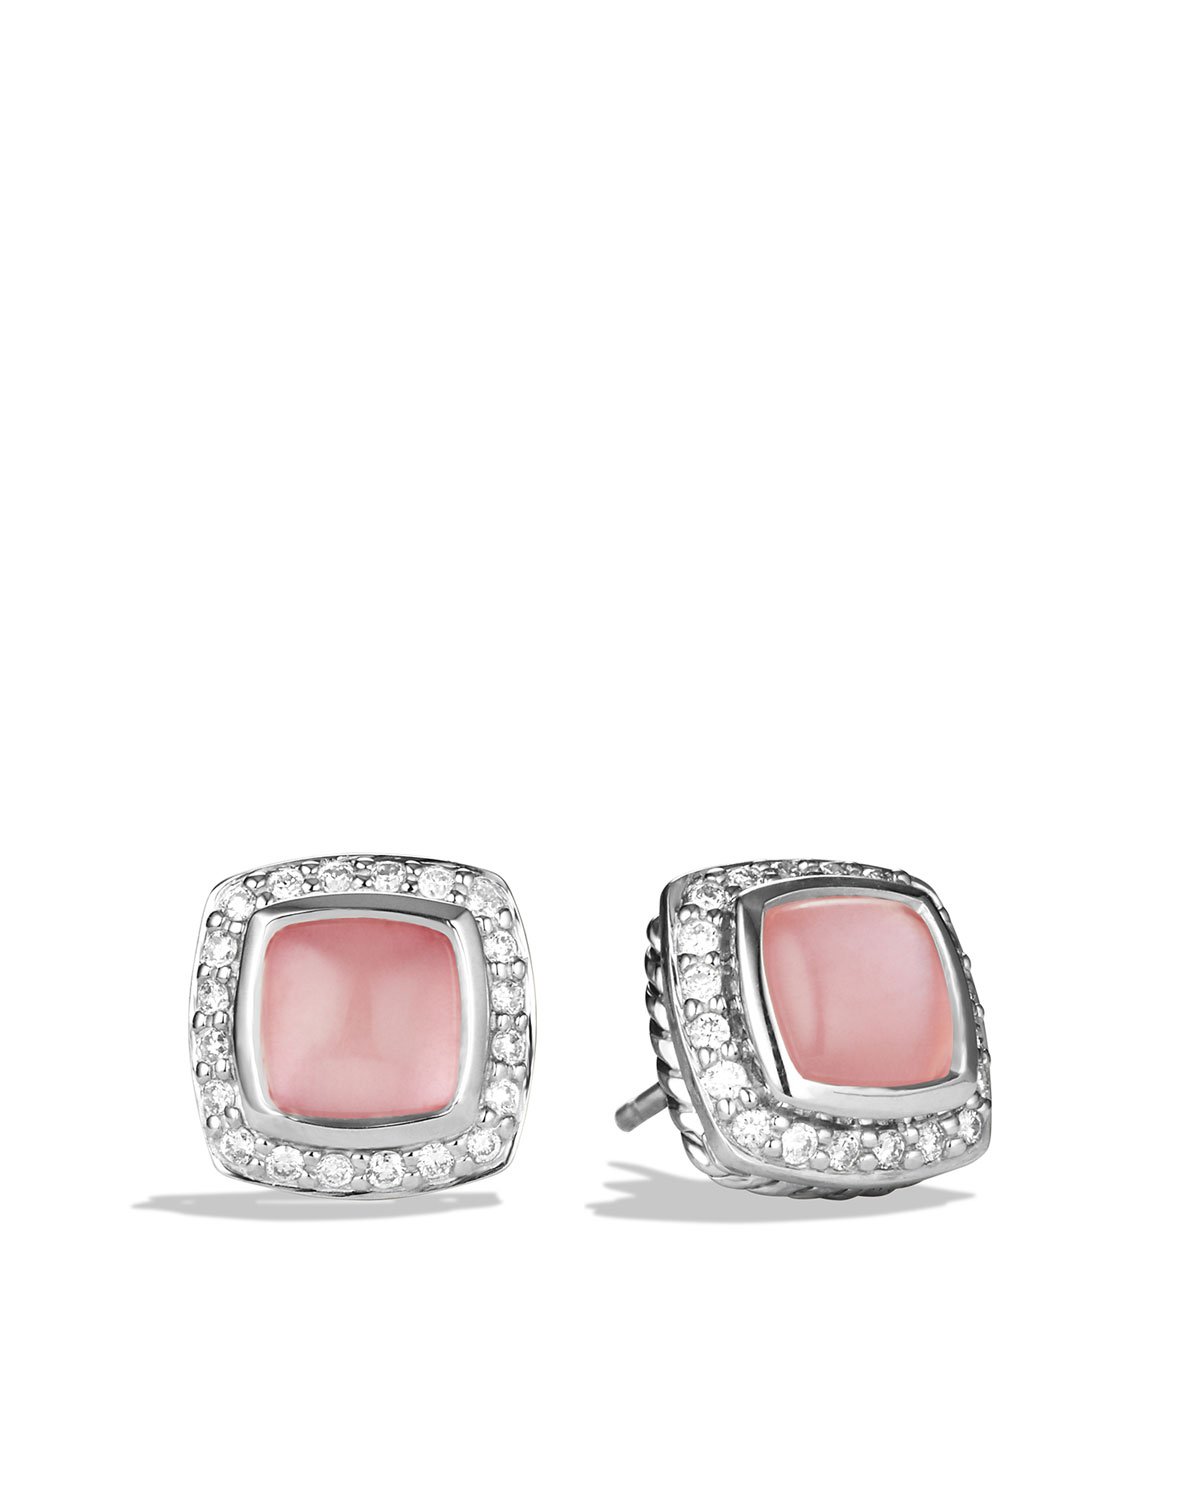 Petite Albion Earrings with Rose Quartz and Diamonds